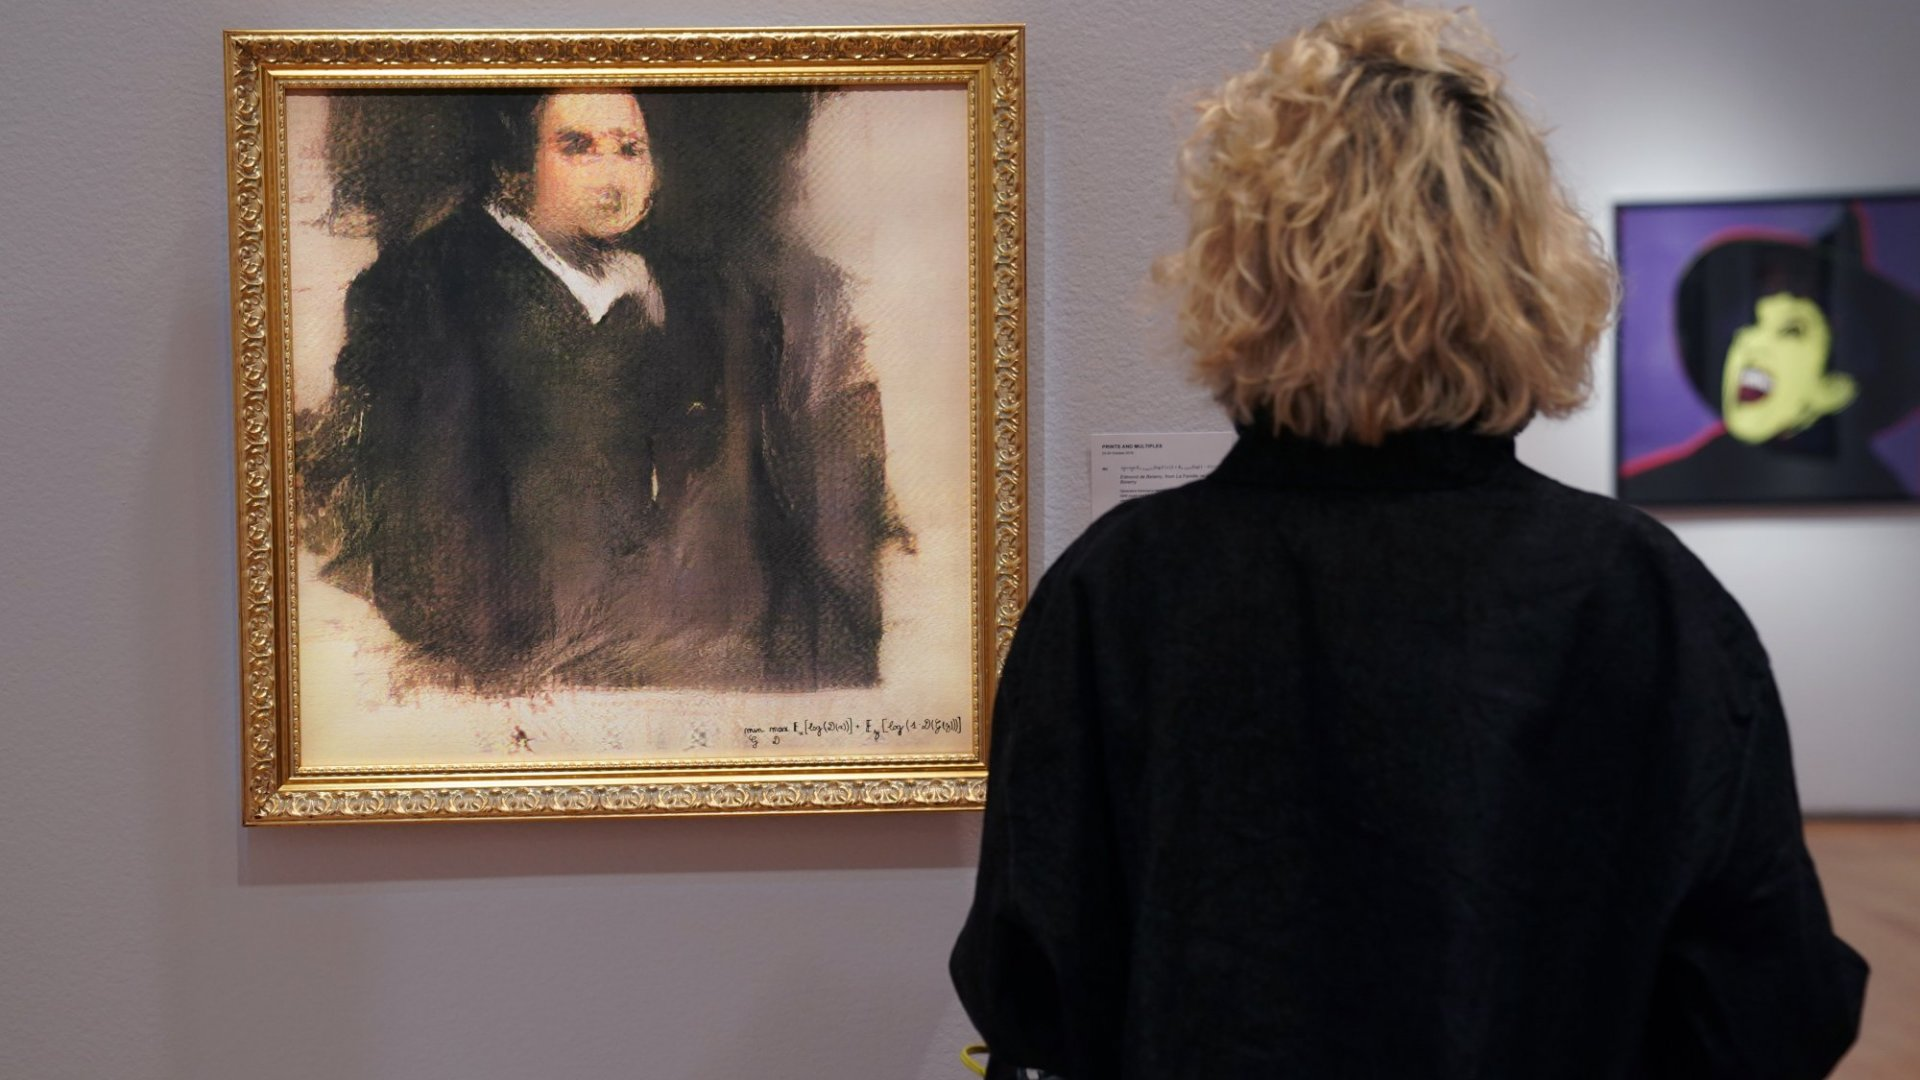 An AI Painting Sold for $432,500. Now a 19-Year-Old Claims Its Creators Used His Code--and Didn't Pay